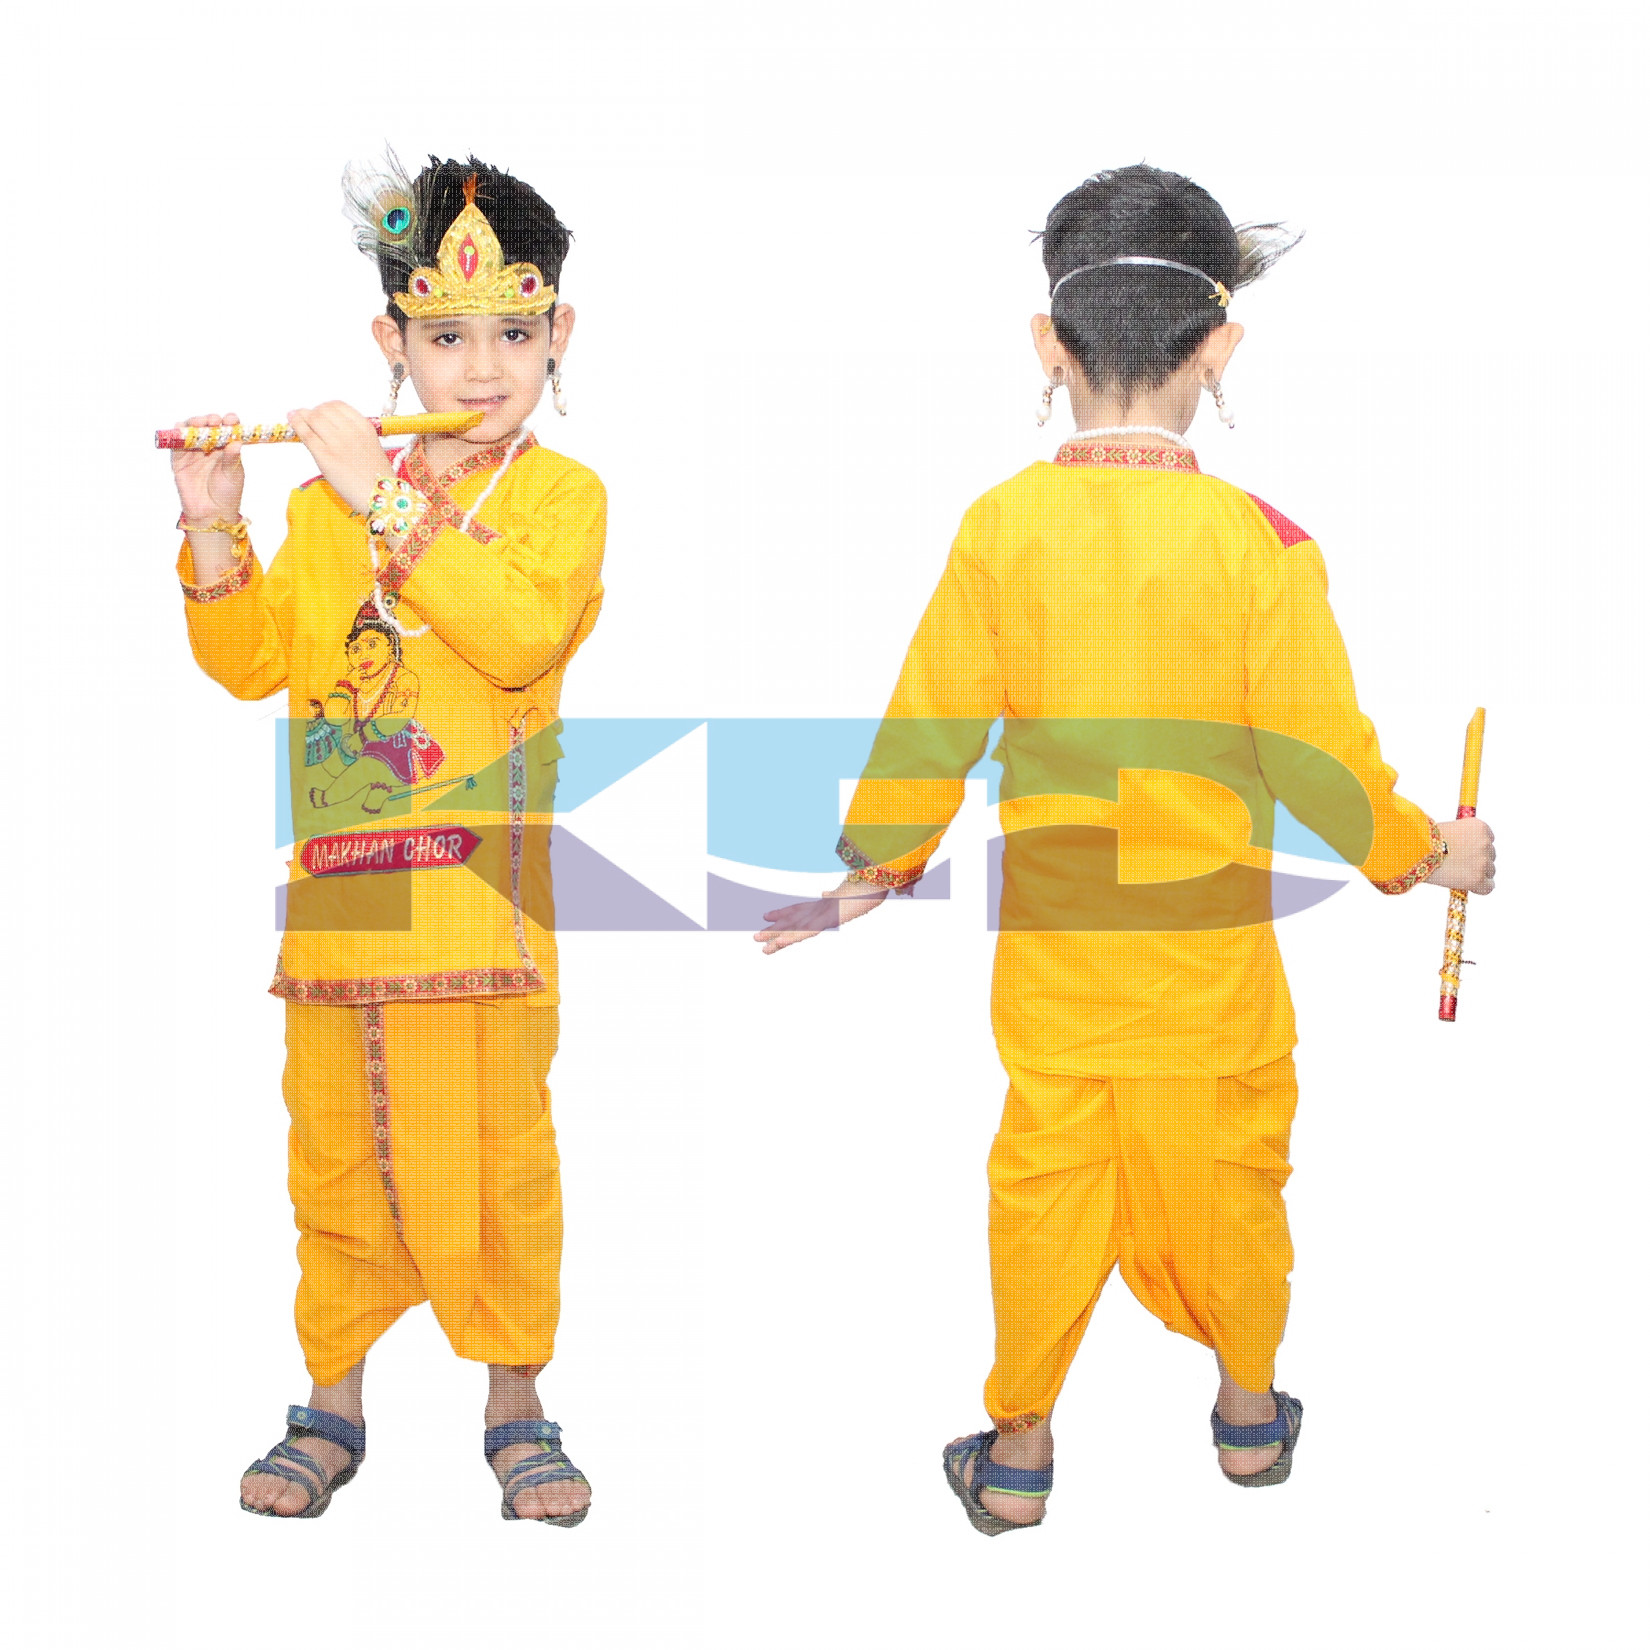 Maakhan Chor In Cotton Fabric,Krishnaleela/Janmashtami/Kanha/Mythological Character For Kids School Annual functionTtheme Party/Competition/Stage Shows Dress